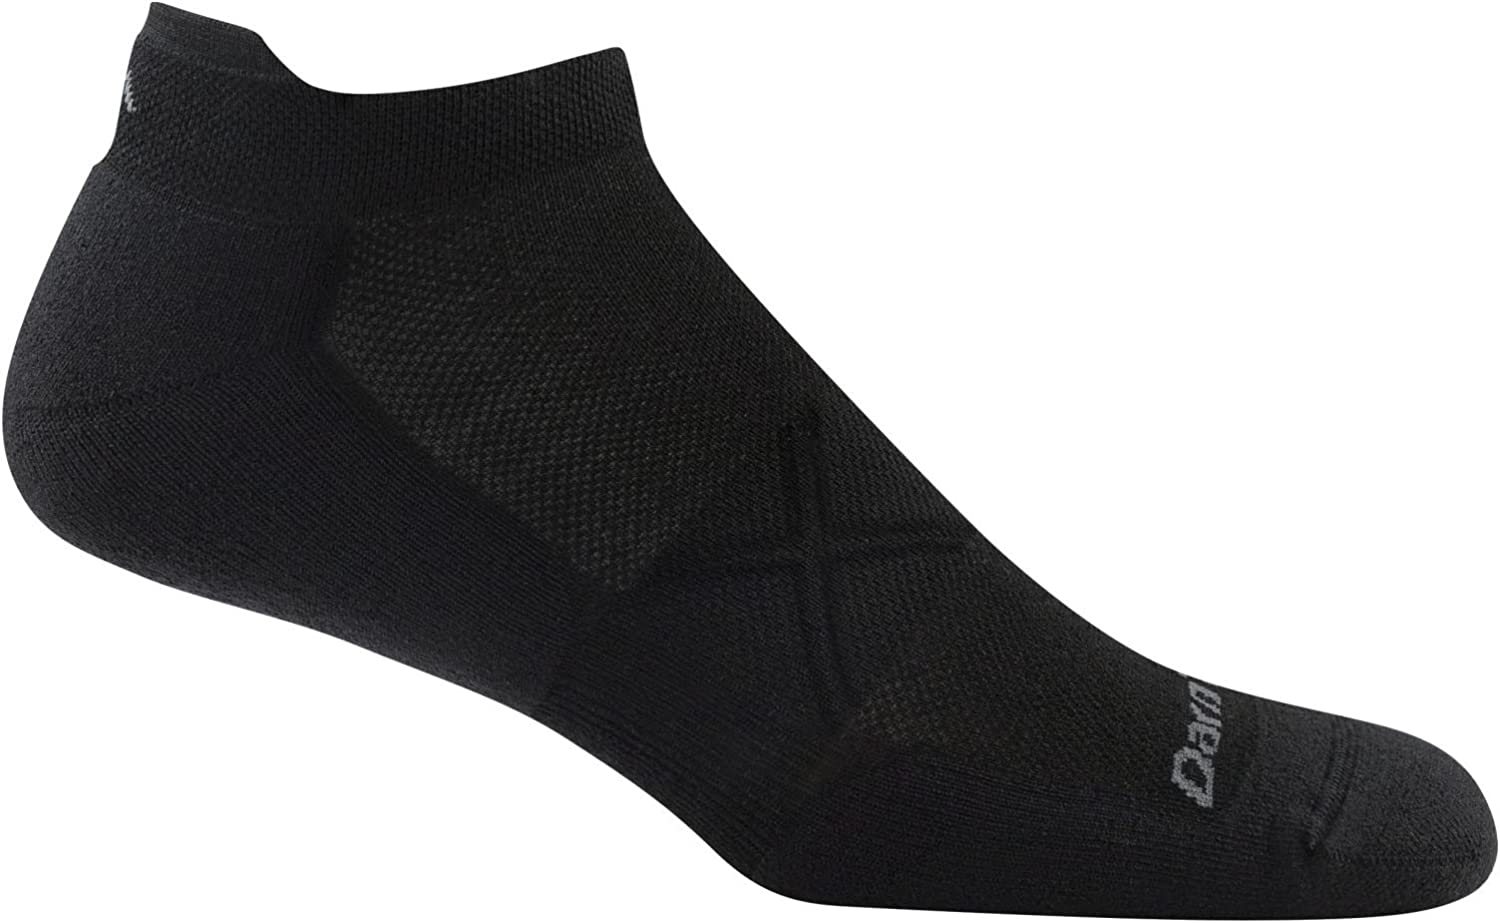 Darn Tough Vertex No Show Tab Ultralight Sock - Men's